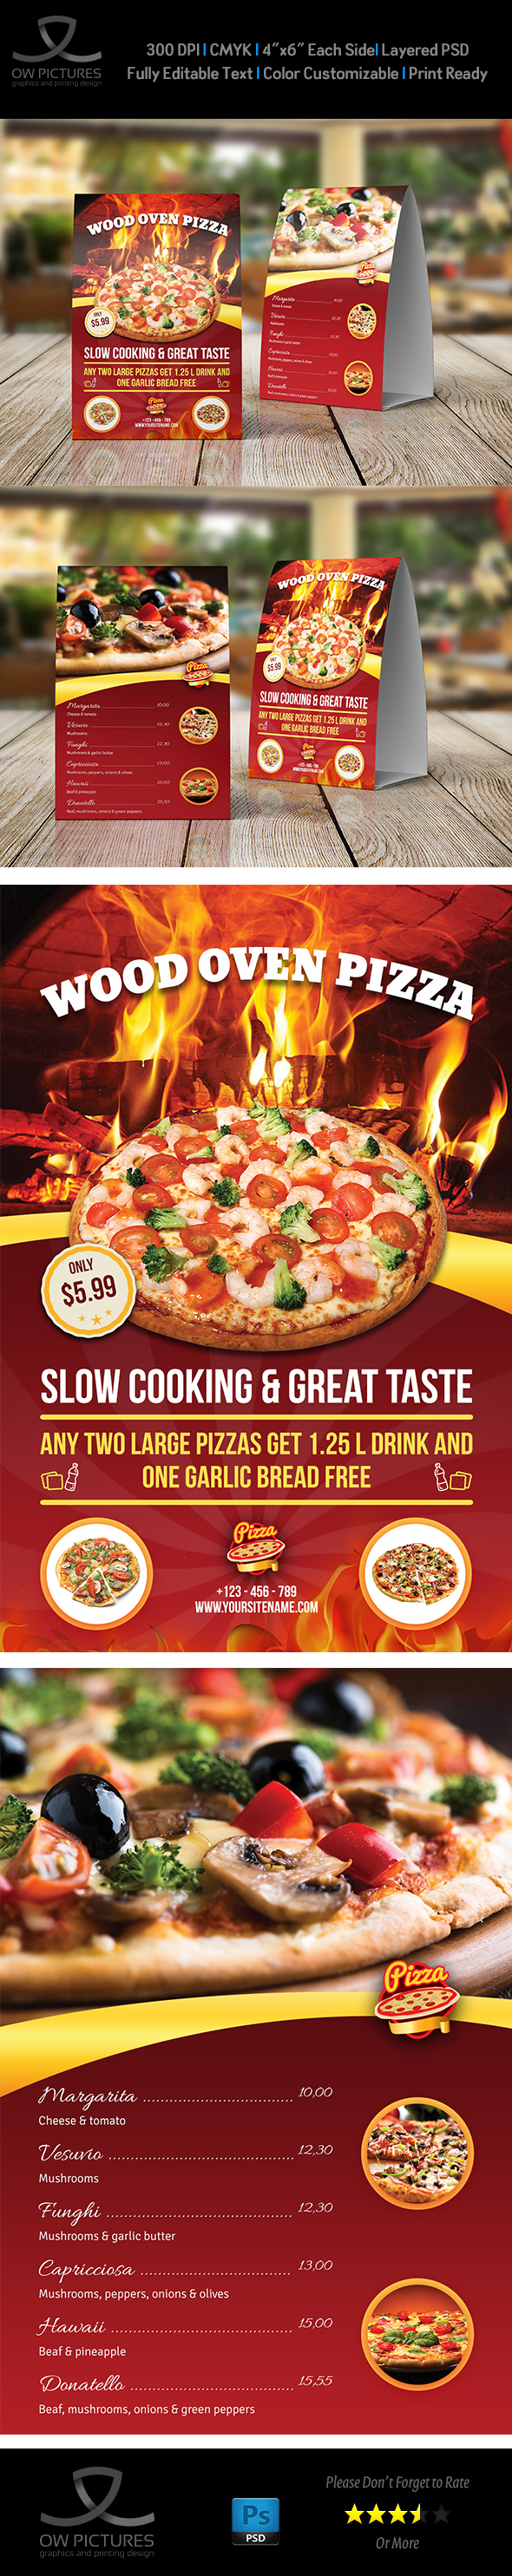 Pizza Restaurant Table Tent Template Vol On Behance - Restaurant table tent template